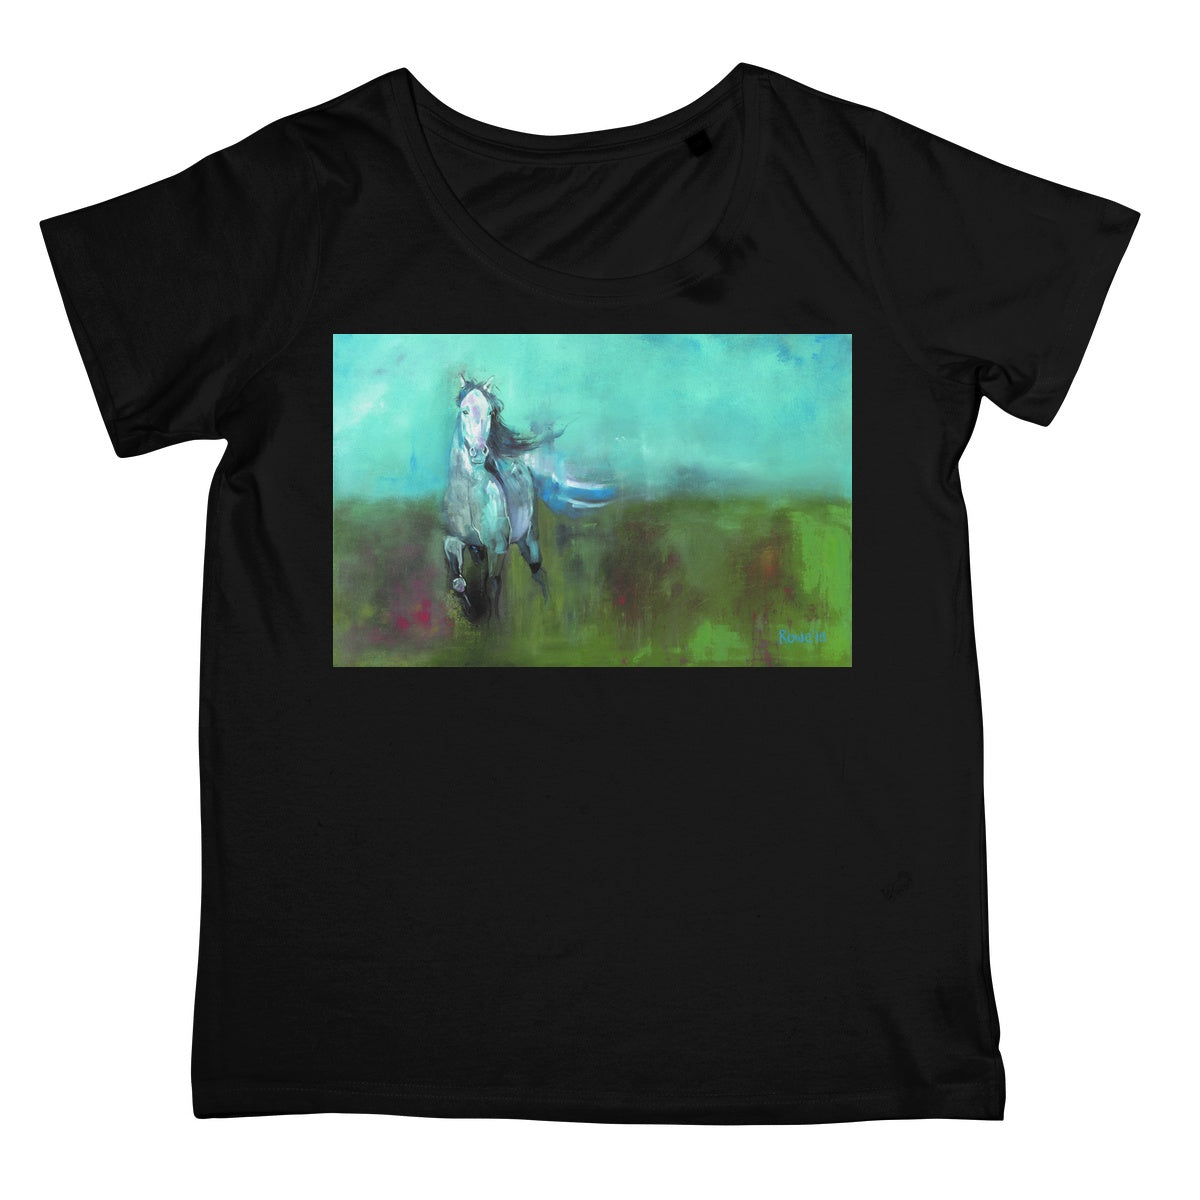 Storm in a Summer Field Women's Retail T-Shirt